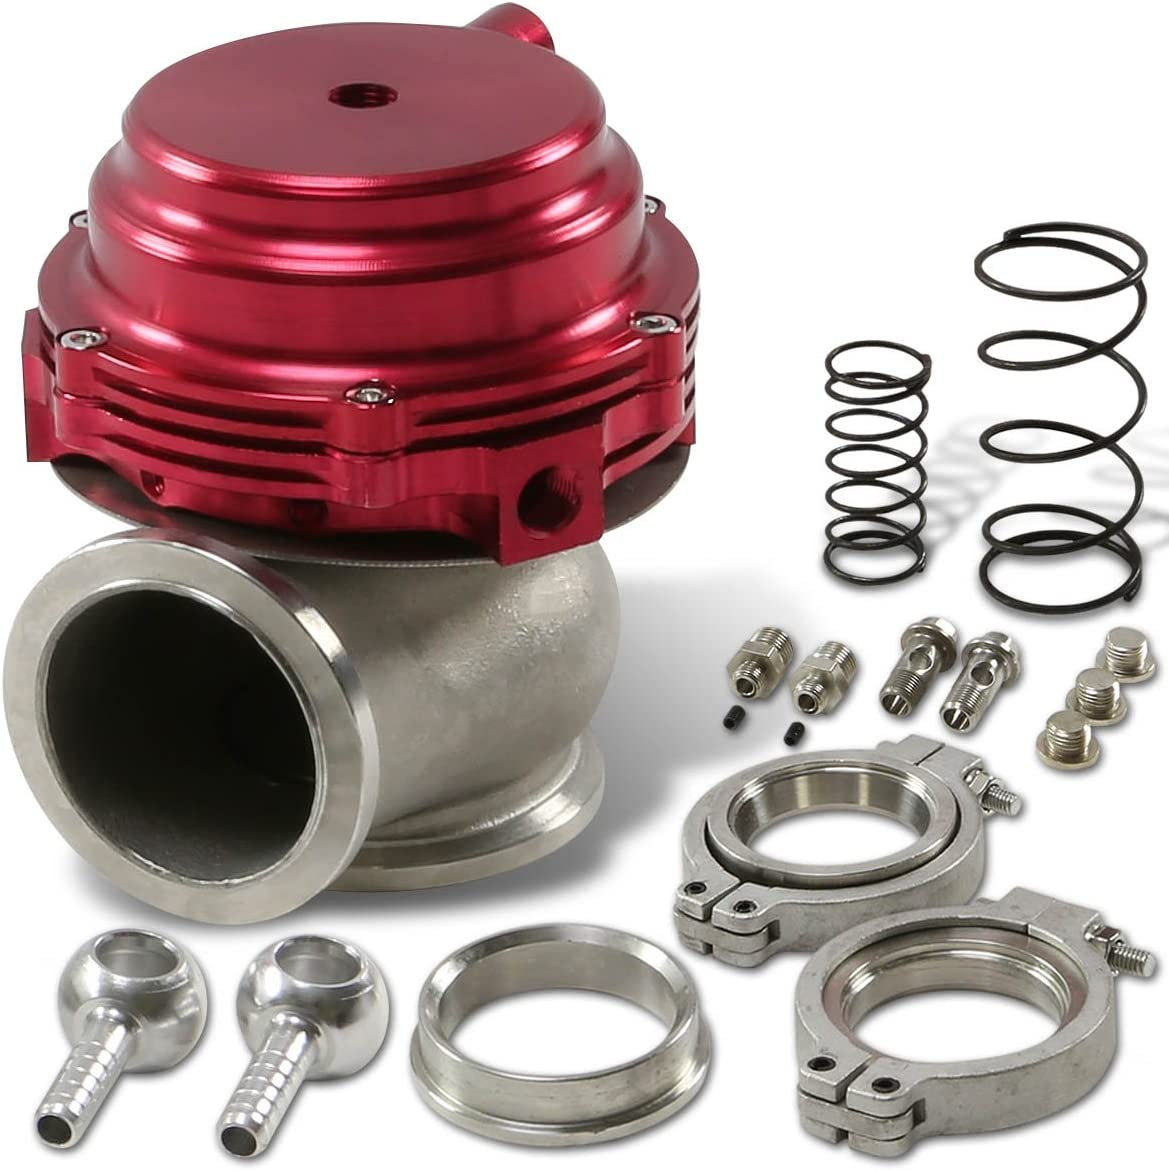 Bolt-on Virginia Beach Mall 44mm V-band low-pricing External Turbo R Manifold Exhaust Wastegate